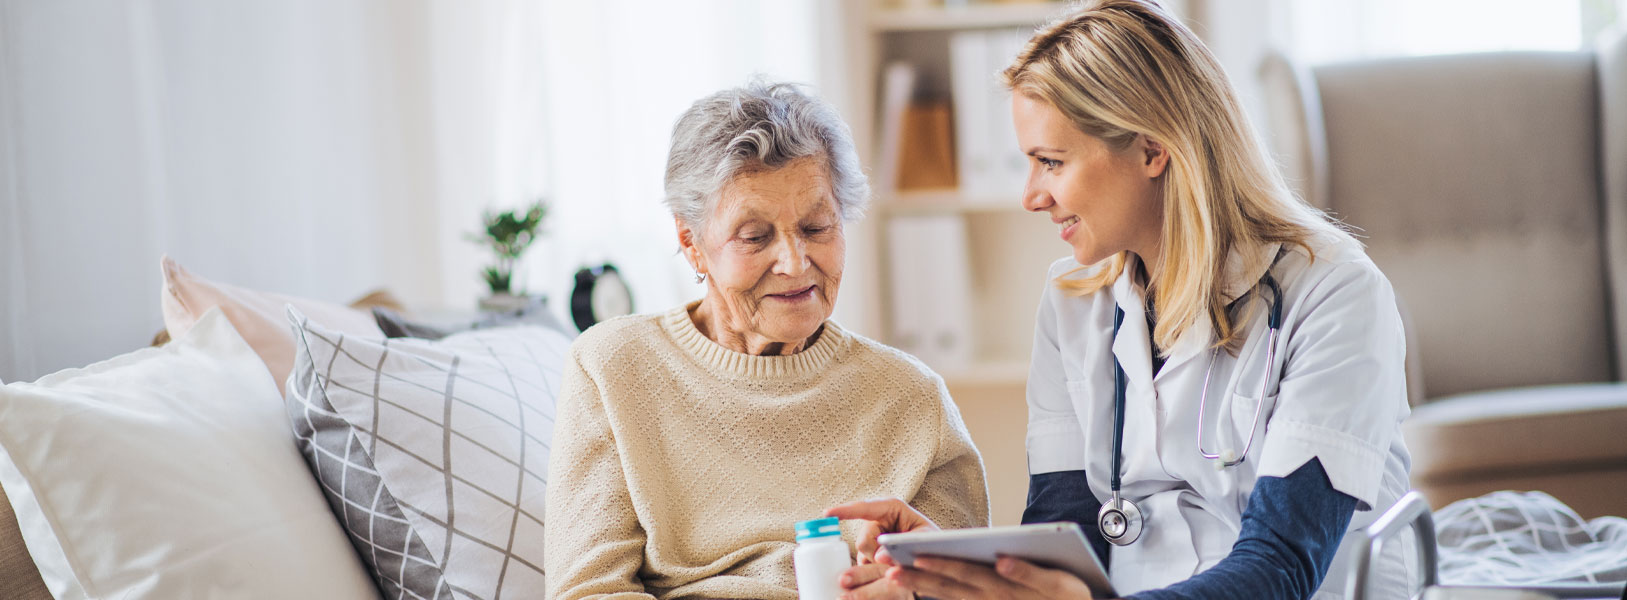 A female nurse is explaining to an elderly woman on what to do